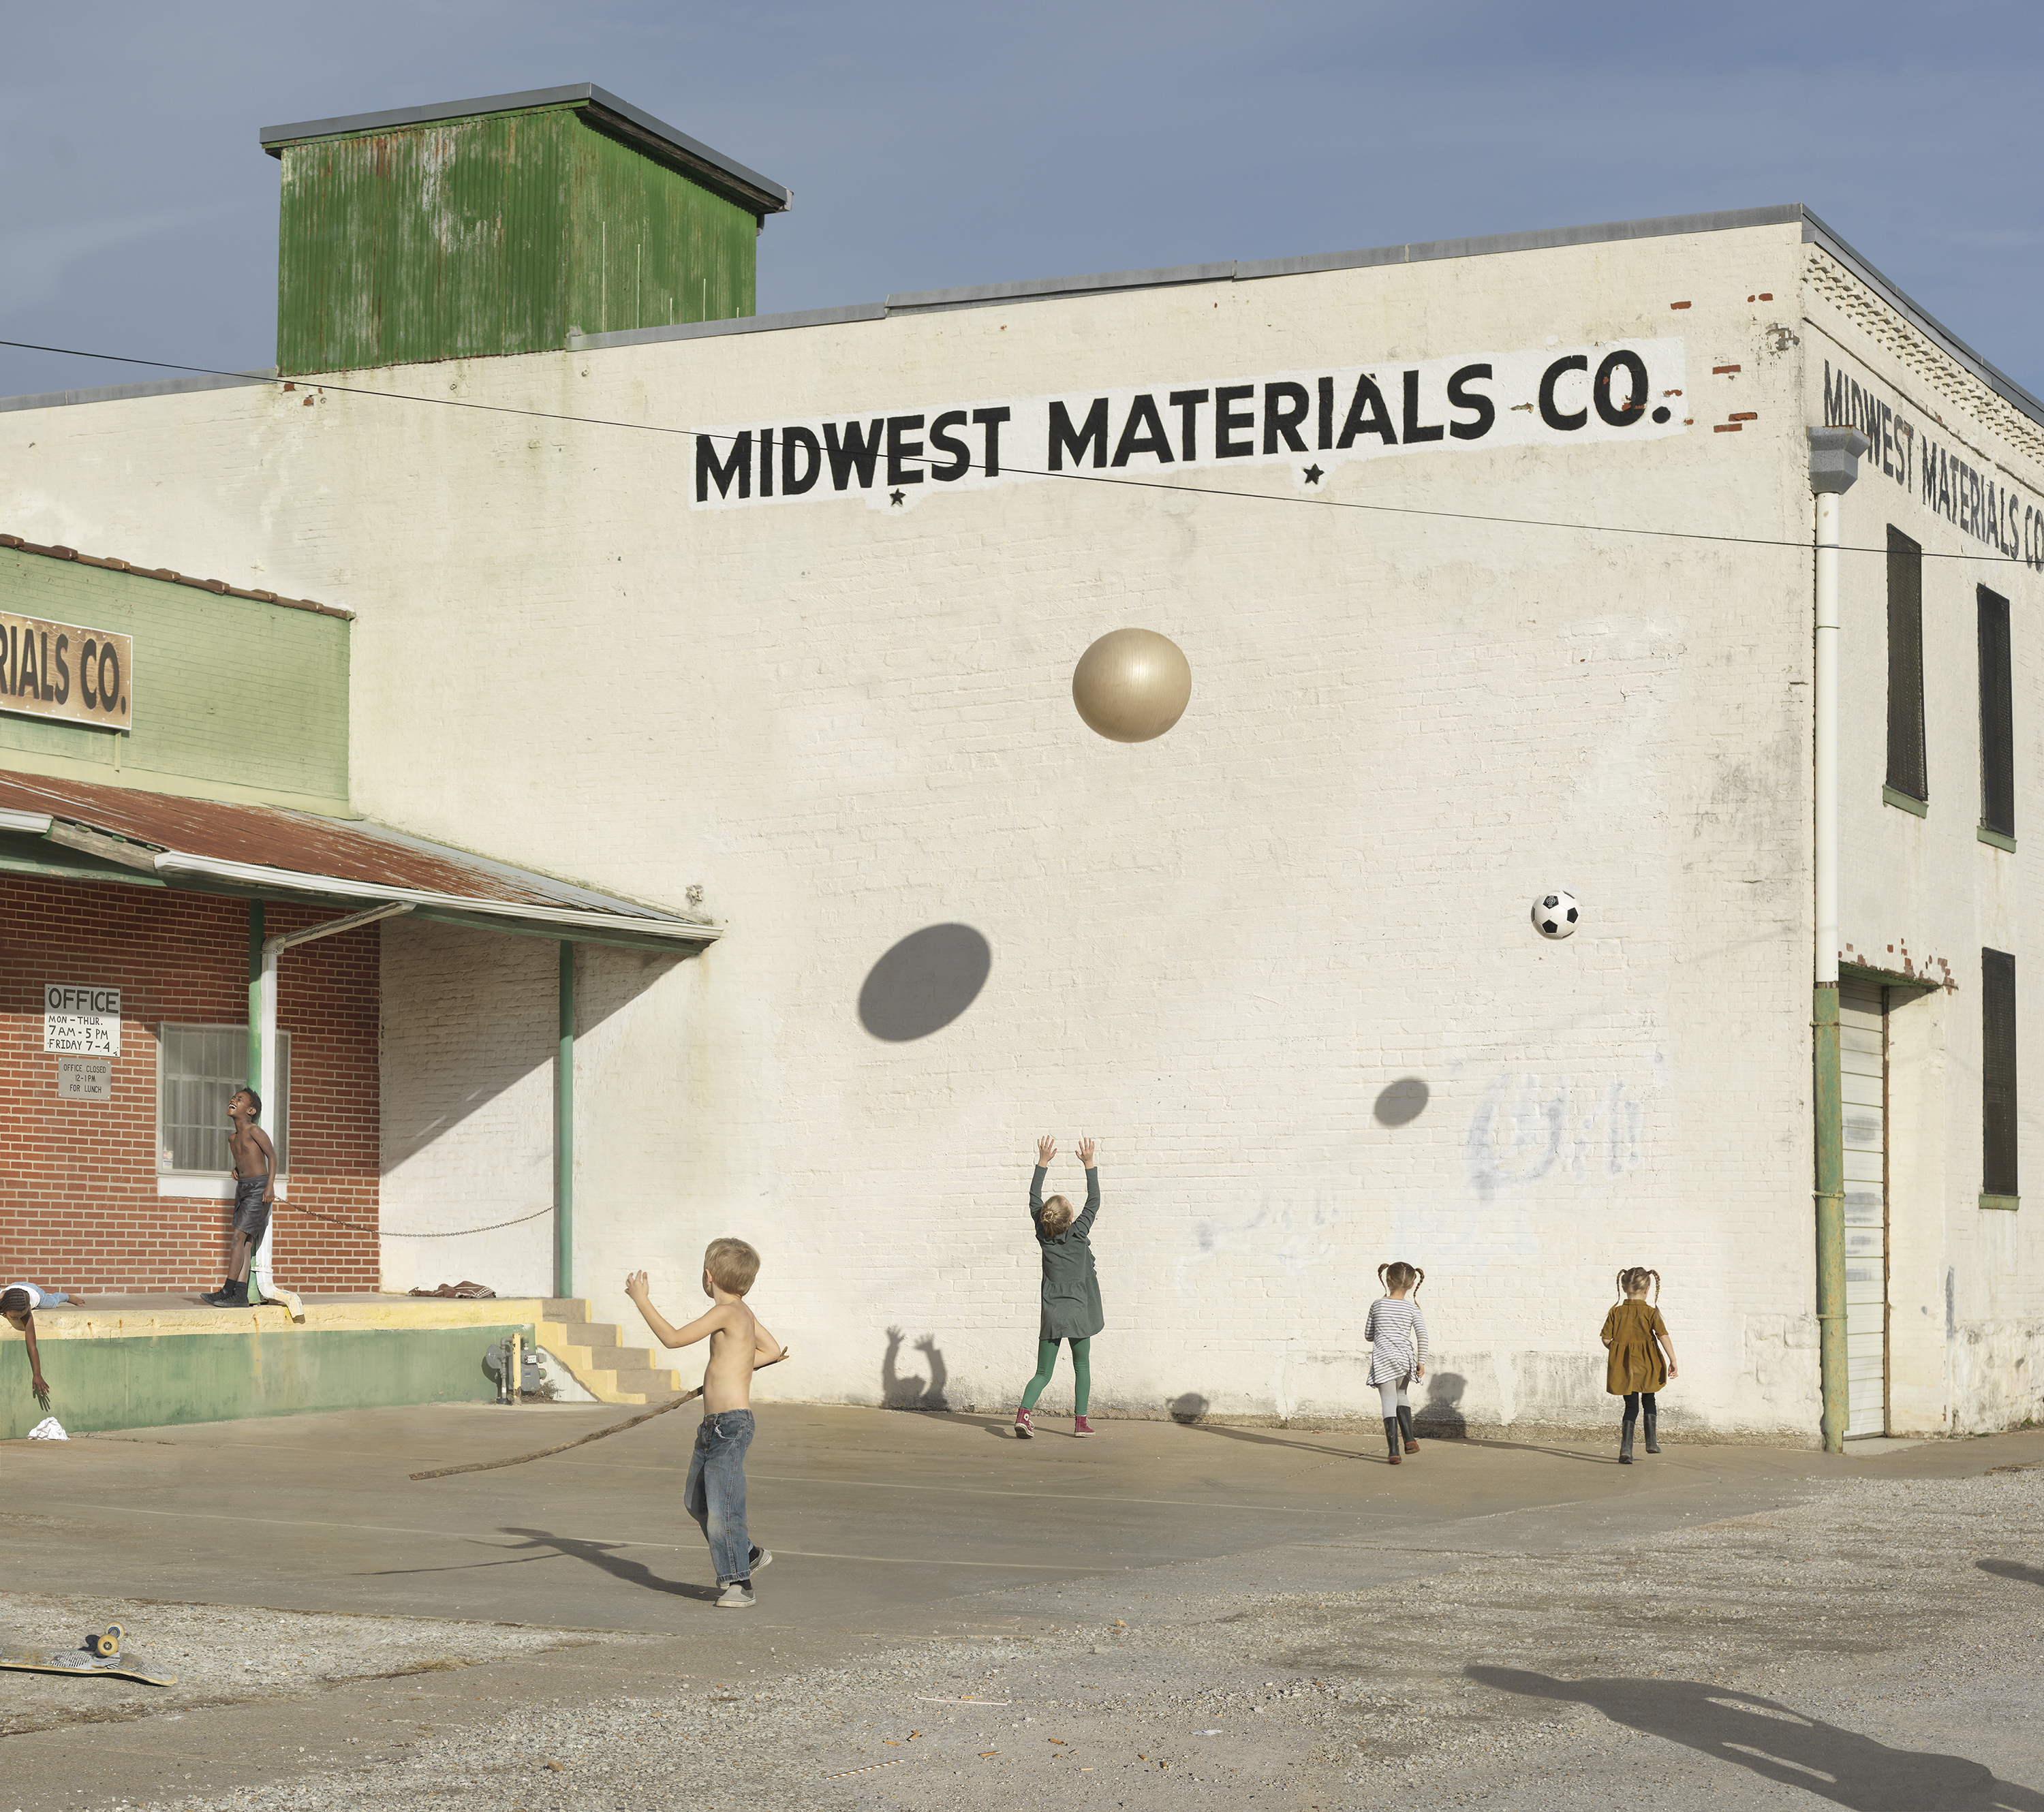 Midwest Materials